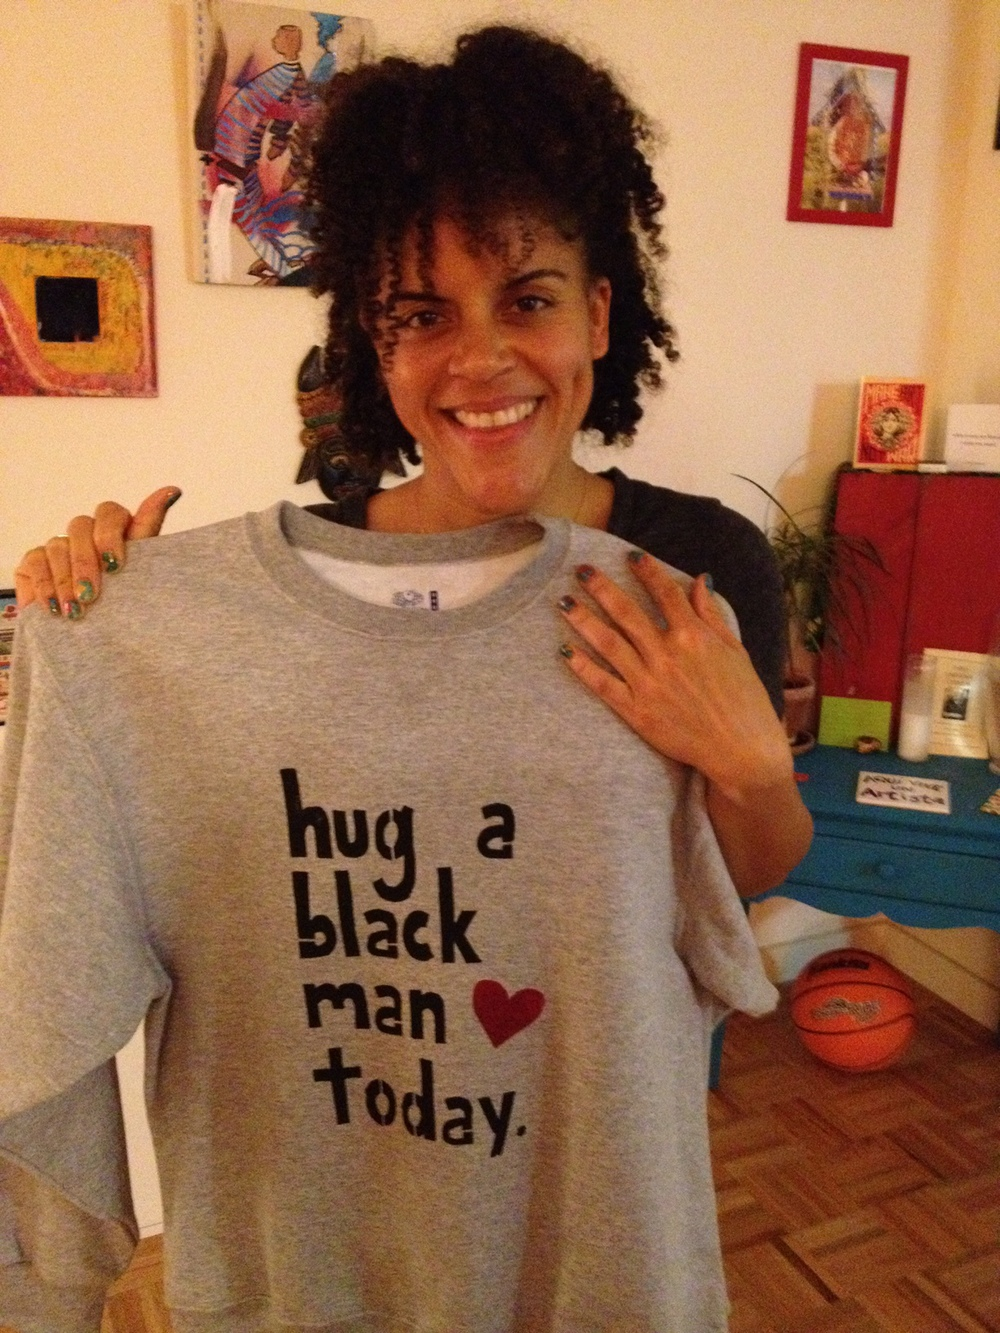 Hug a Black Man Today